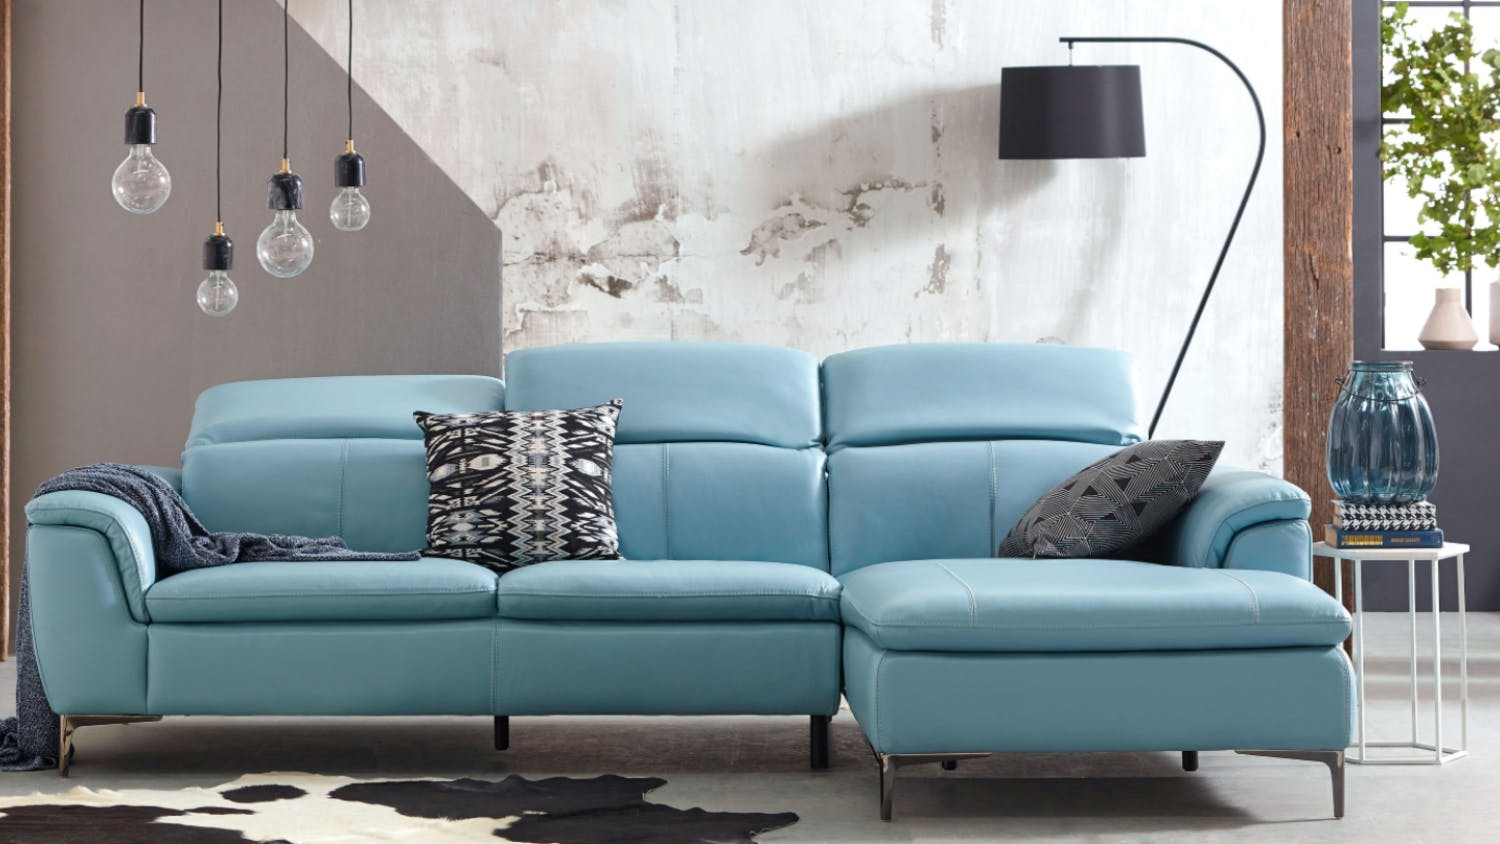 Turquoise Living Room Furniture Lounges Sofa Bed Sofa Futon Leather Lounge More Domayne